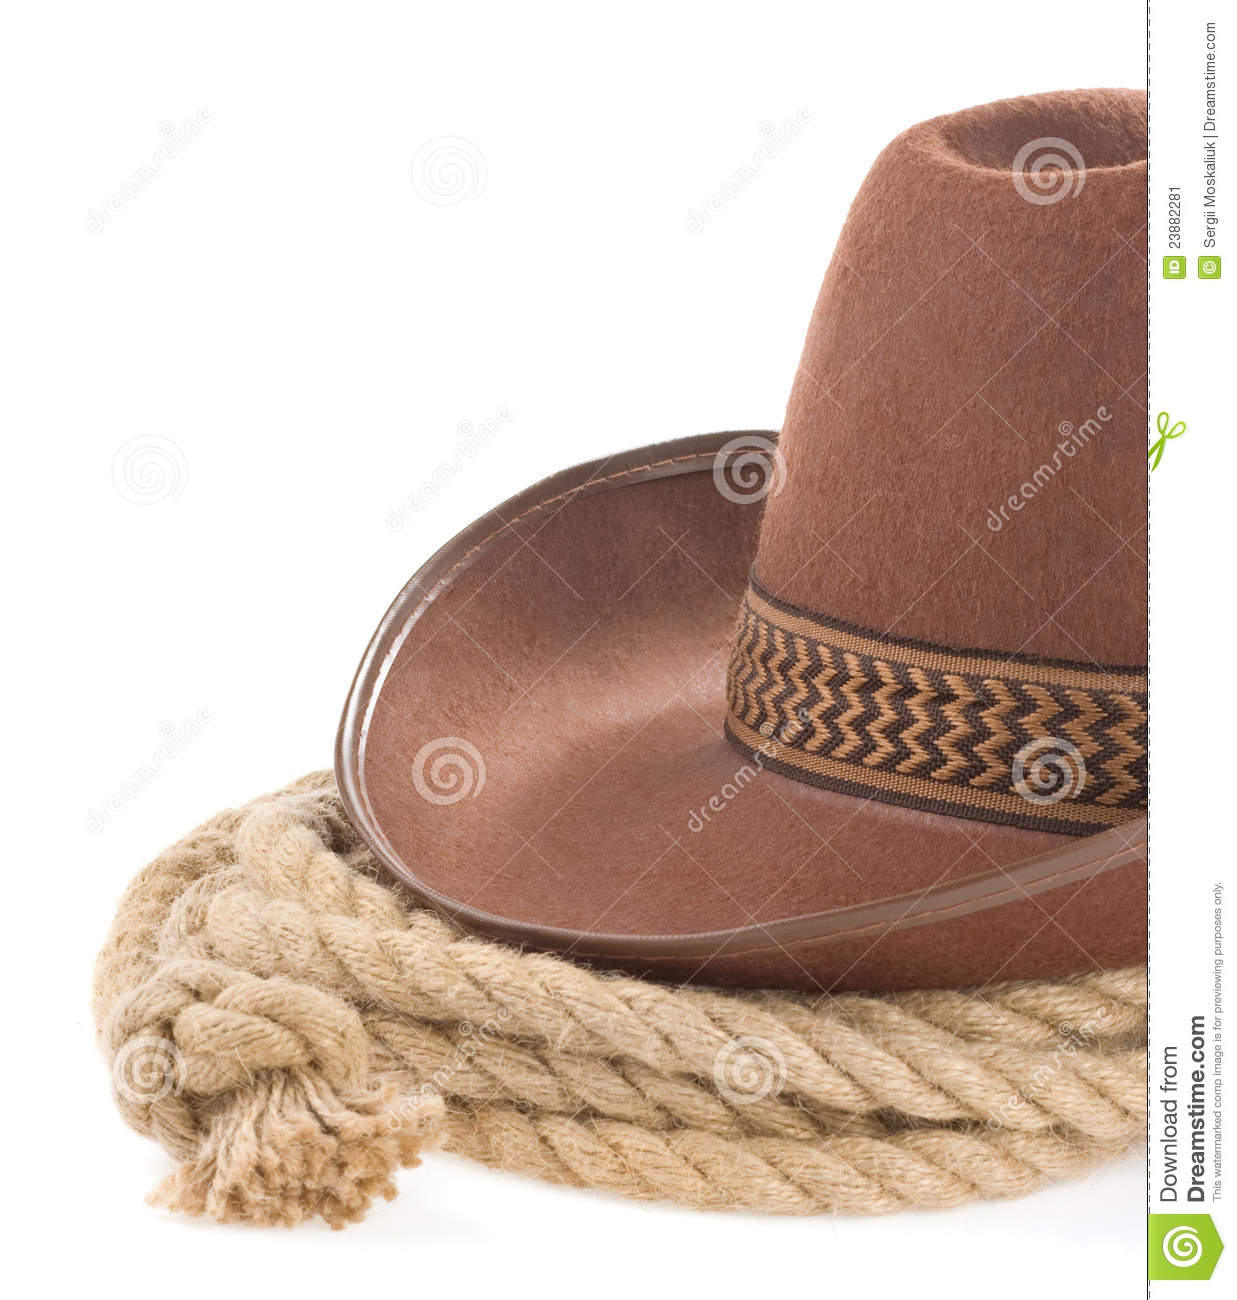 boots rope and hat - photo #17